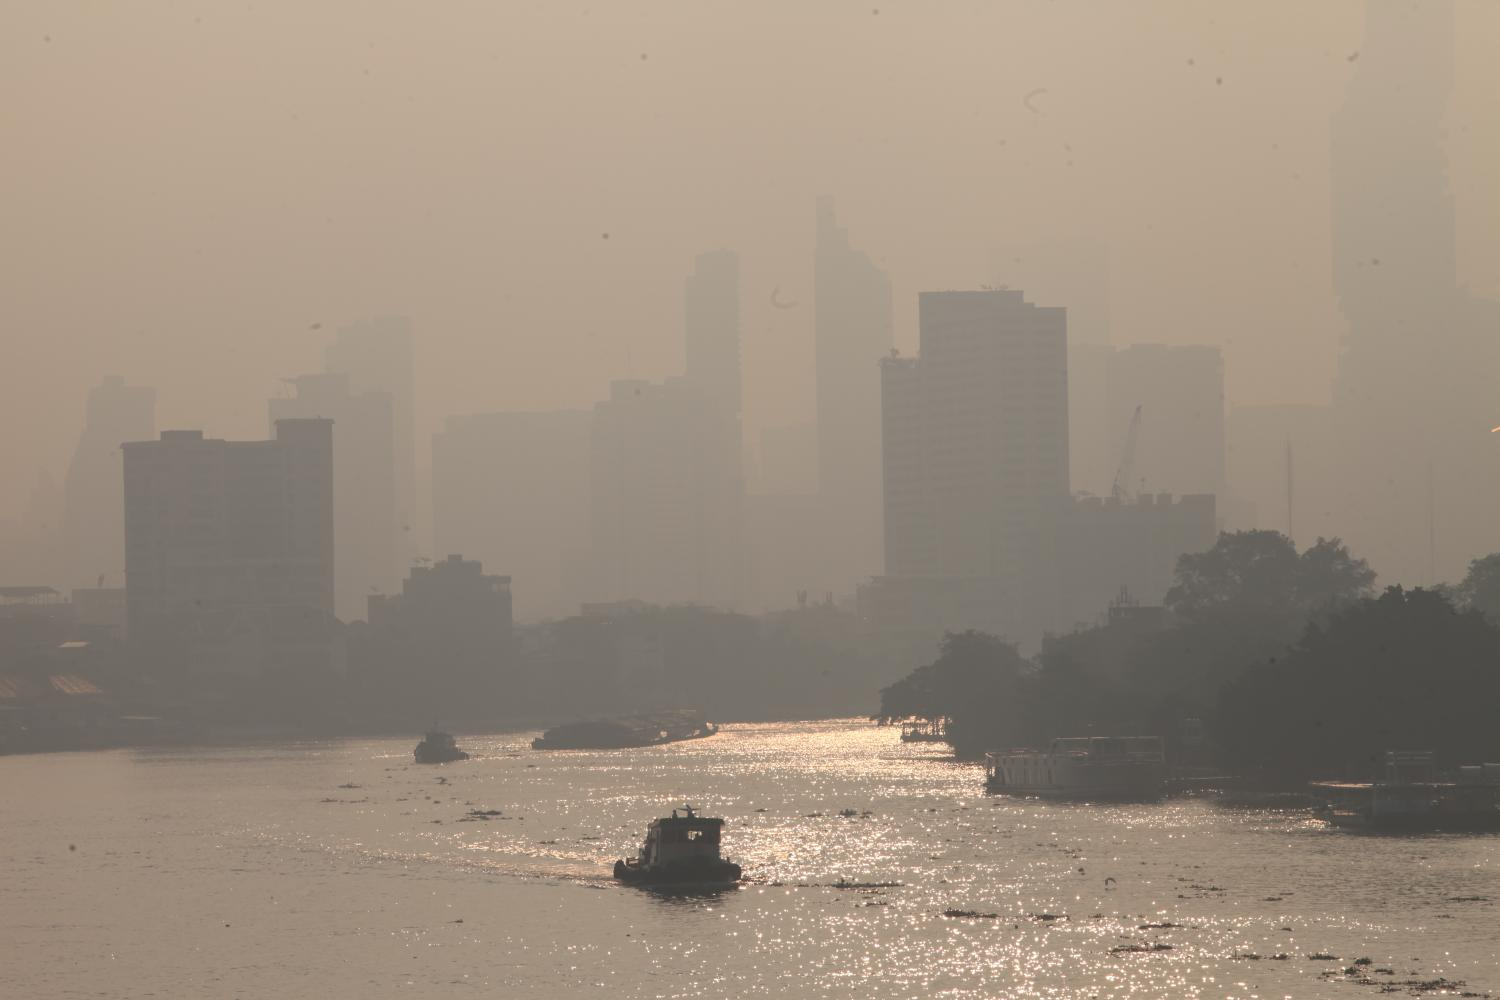 The polluted morning skyline, as seen from Phra Pok Klao Bridge over the Chao Phraya River in Klong San district. Levels of the health-hazardous PM2.5 microdust have exceeded safe limits in parts of the capital and its vicinity recently. Apichart Jinakul